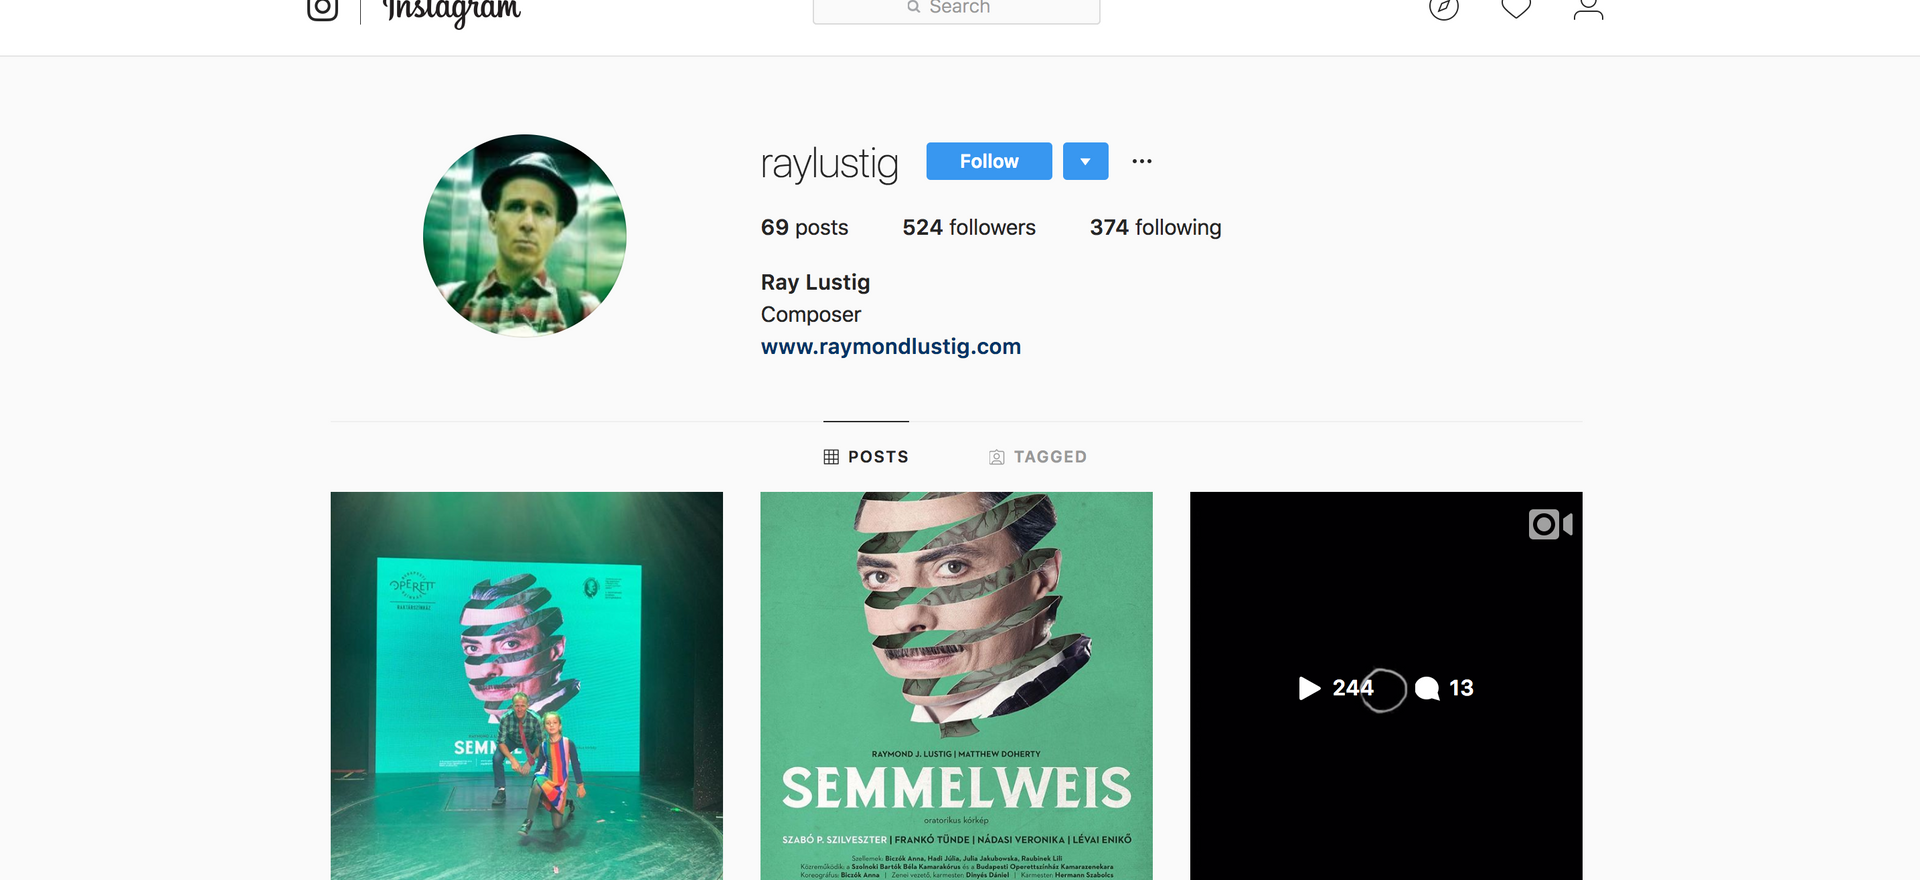 Instagram: Ray Lustig